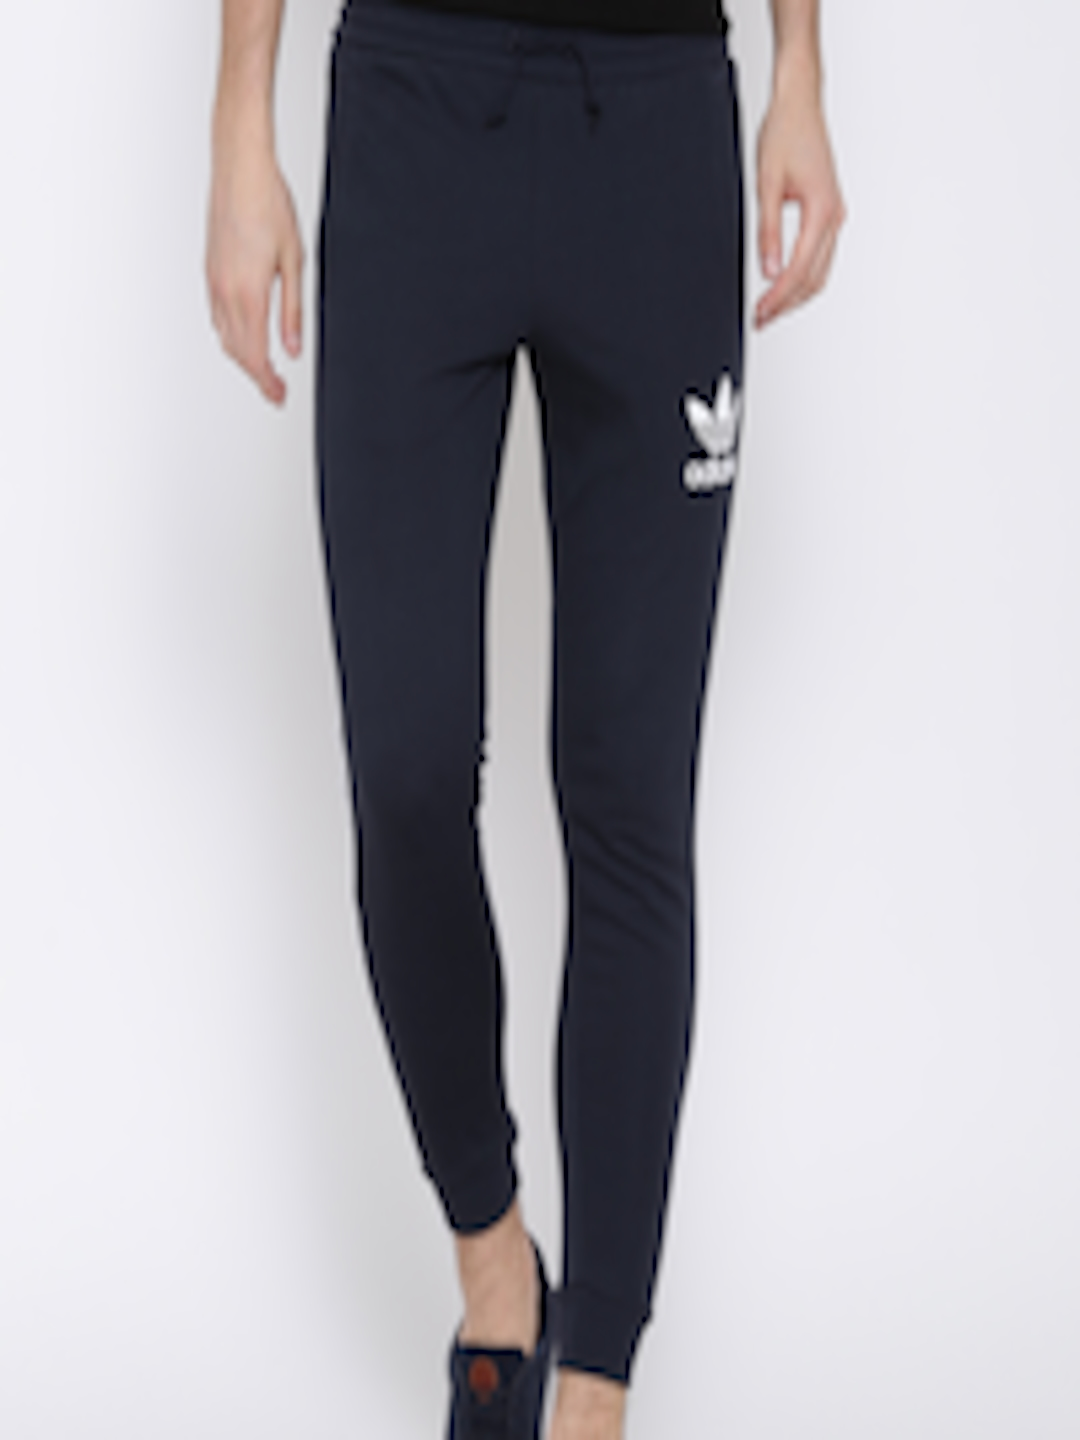 f16e95c5c 11477482401567-Adidas-Originals-Men-Track-Pants-3211477482401283-1.jpg